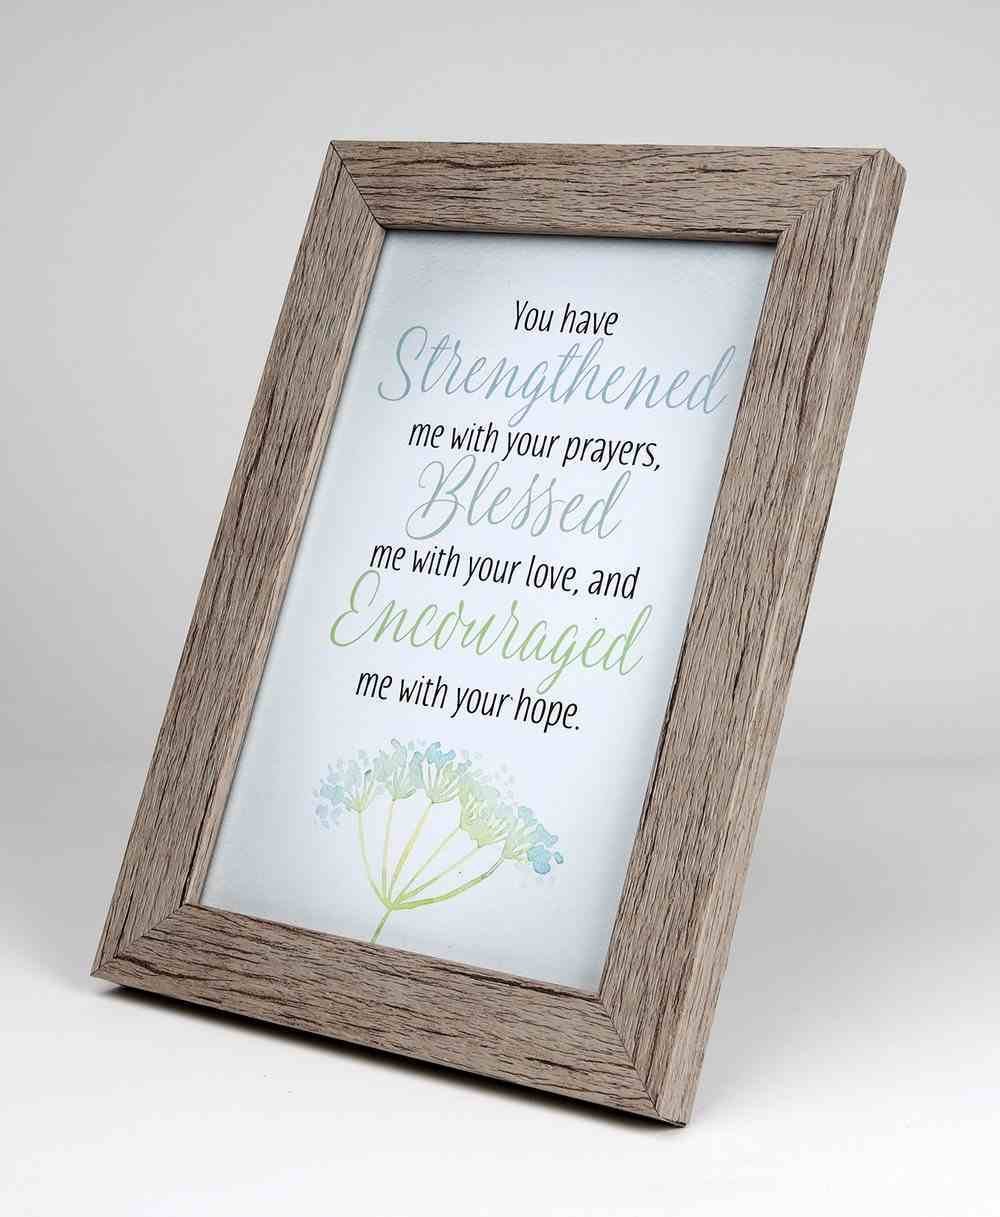 Framed Art With Easel: Strengthened, Blessed, Encouraged (Lasting Impressions Series) Plaque